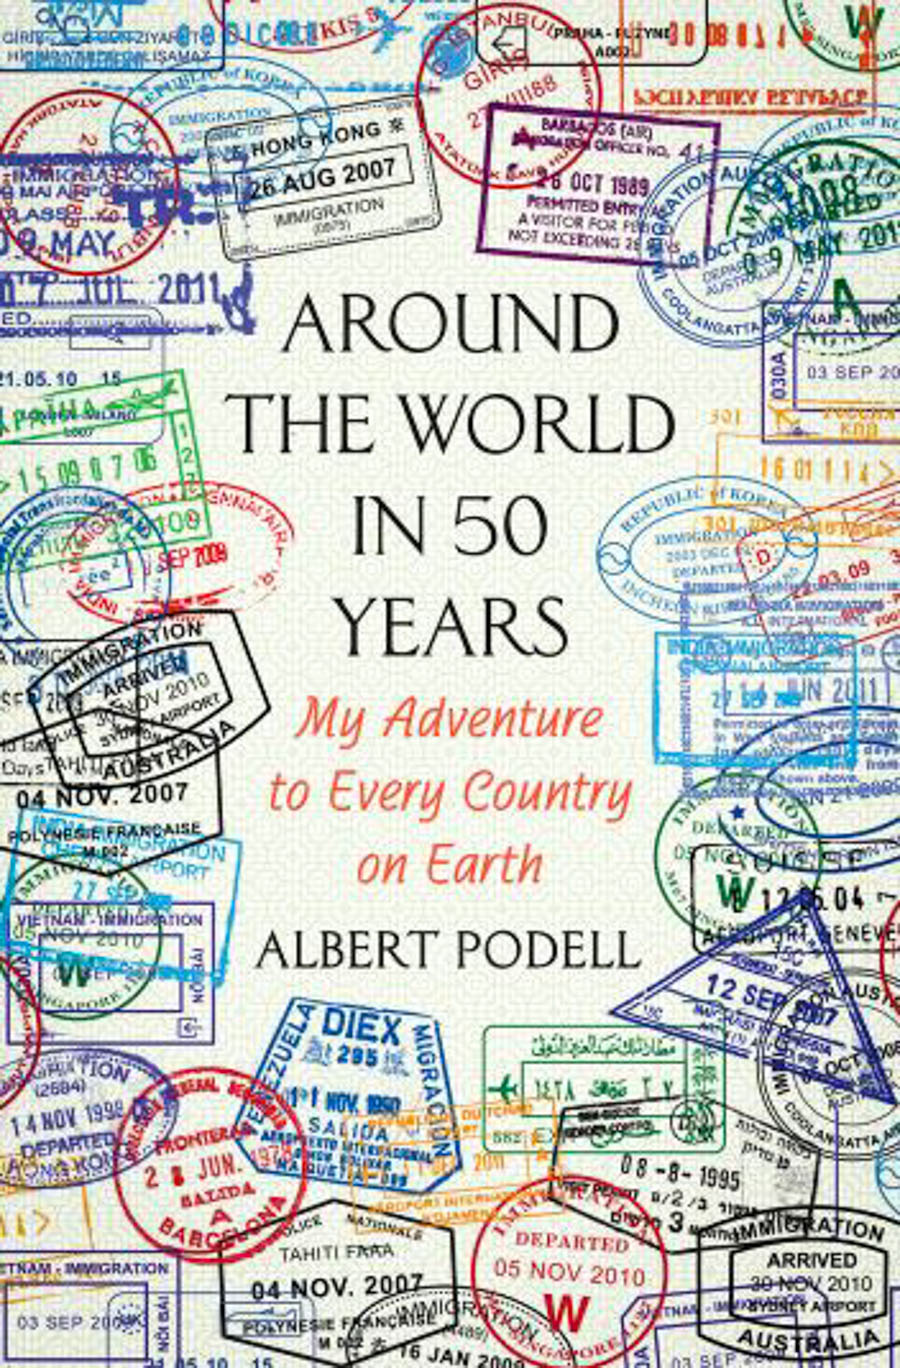 9_travelled every country